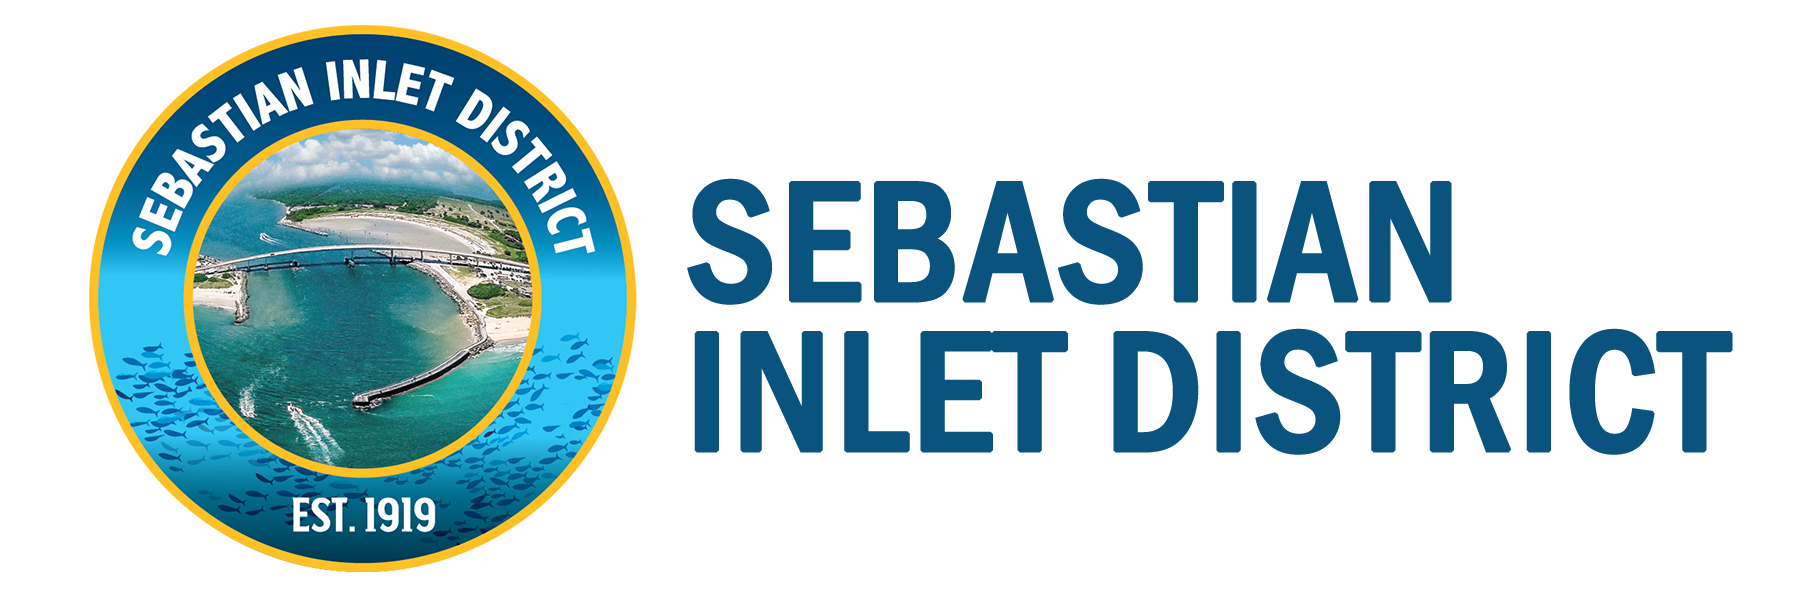 Sebastian Inlet District